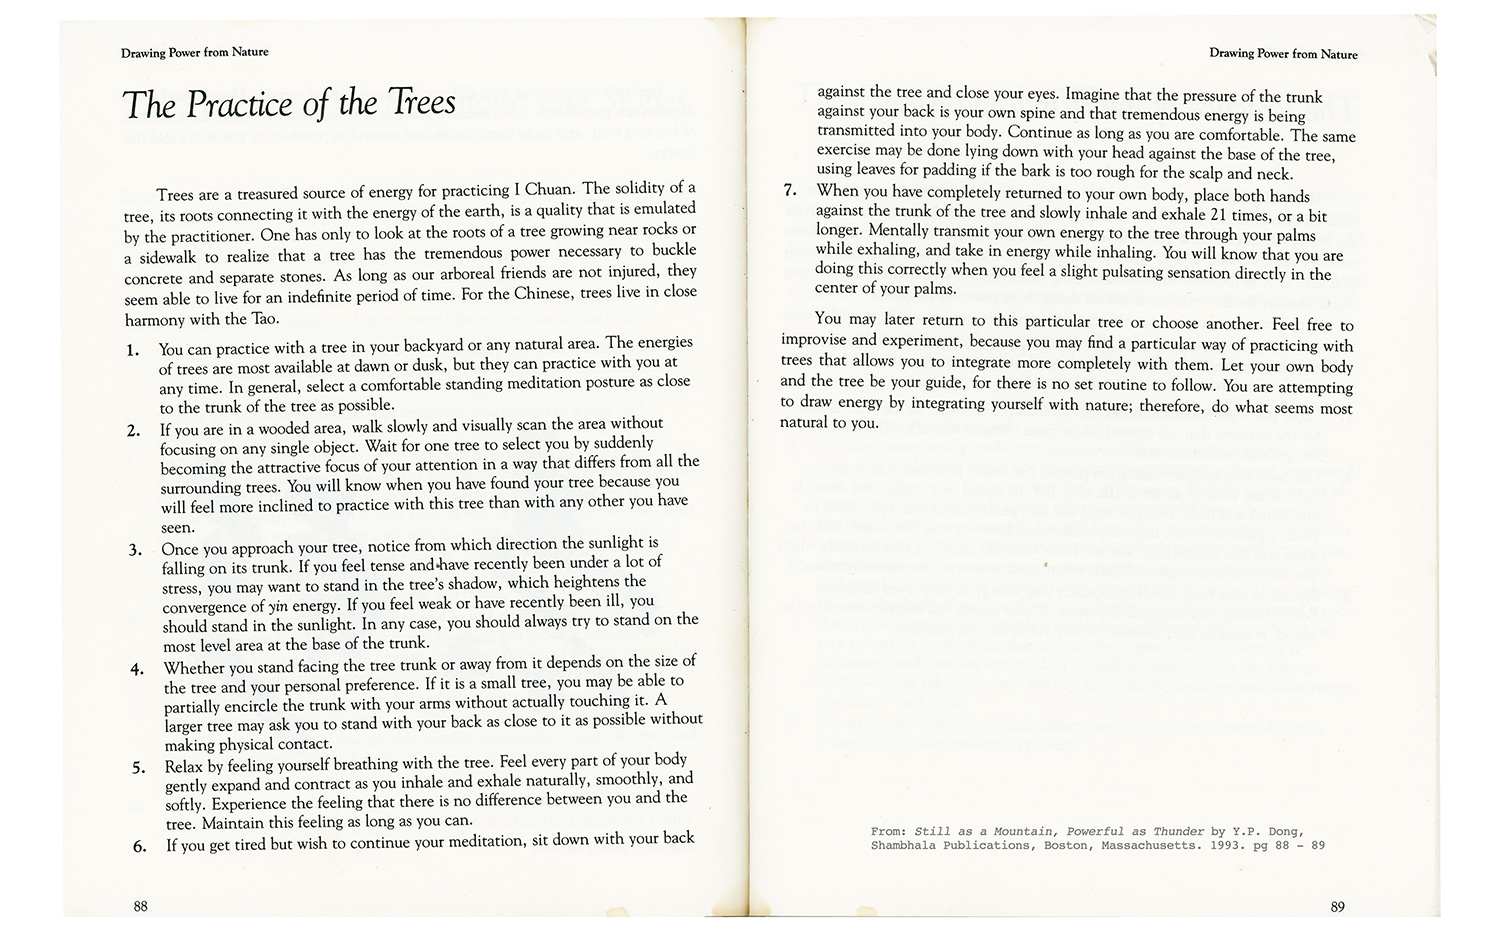 "The Practice of the Trees  from ""Still As a Mountain, Powerful As Thunder"" by Y. P. Dong, Shambhala Publications, 1993. pg. 88-89"